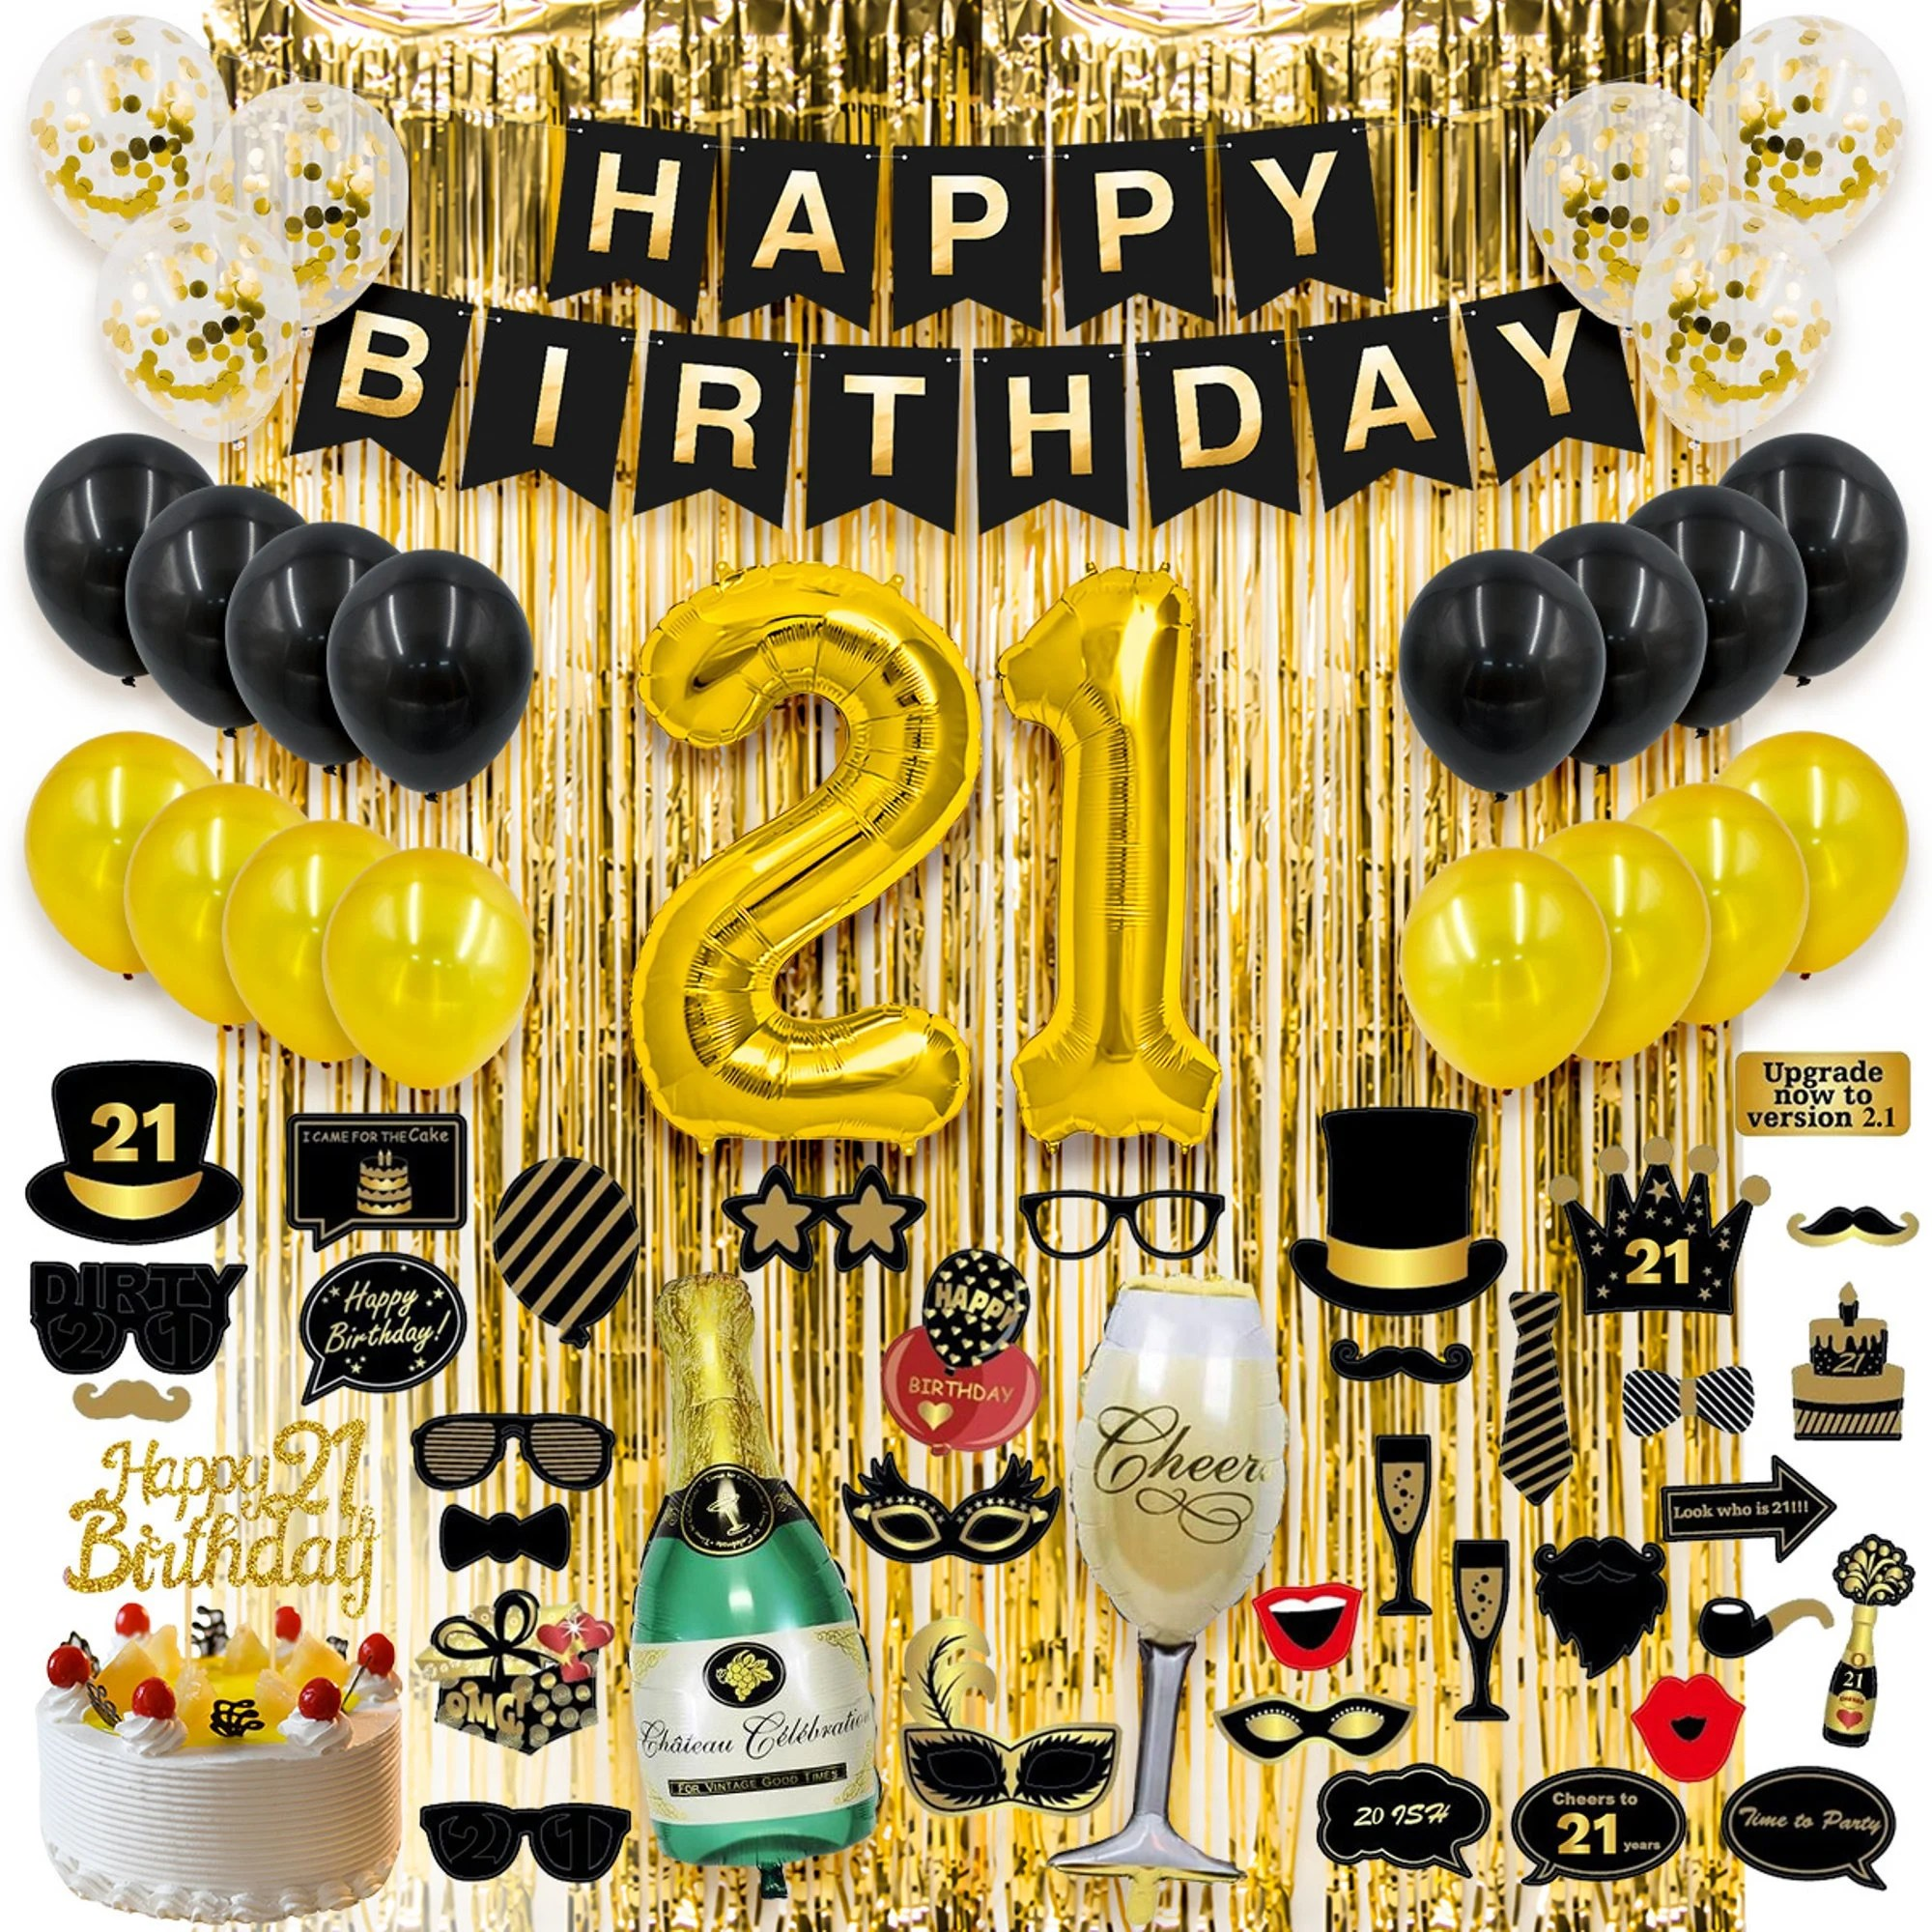 Gold Foil Fringe Curtains 21st Birthday Decorations Gifts For Her Him 21 Birthday Party Supplies Happy Birthday Banner 21 Gold Number Balloons And Confetti Balloons Men Women Party Supplies Toys